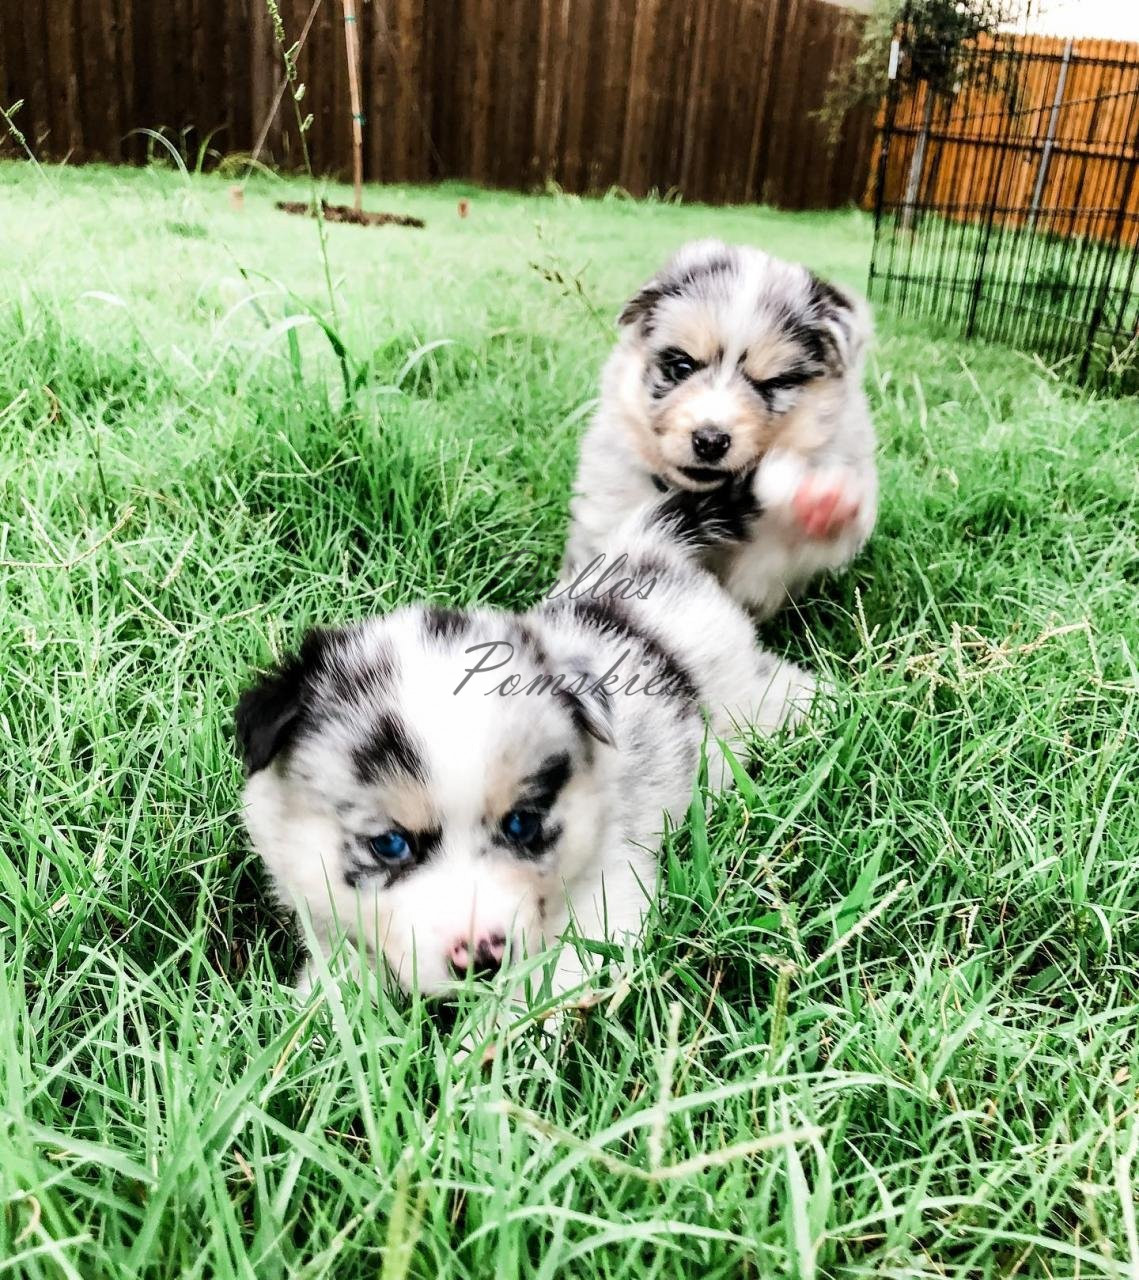 TAG, you're it! . . #pomsky #pomskies #pomskys #pomskypuppy #pomskypuppies #pomskybreeder #dallaspomskies #merle #bluemerle #merlepomsky #husky #pomeranian #dogsofinstagram #dogsofig #puppies #puppiesofinstgram #dallas #tx #texas #merlepuppy #blueeyes #blueeyedpuppy #cuddle #puppiesforsale #pomskypuppiesforsale TAG, you're it! . . #pomsky #pomskies #pomskys #pomskypuppy #pomskypuppies #pomskybreeder #dallaspomskies #merle #bluemerle #merlepomsky #husky #pomeranian #dogsofinstagram #dogsofig #puppies #puppiesofinstgram #dallas #tx #texas #merlepuppy #blueeyes #blueeyedpuppy #cuddle #puppiesforsale #pomskypuppiesforsale 118948242 3133303330056299 7690187761298988976 n TAG, you're it! . . #pomsky #pomskies #pomskys #pomskypuppy #pomskypuppies #pomskybreeder #dallaspomskies #merle #bluemerle #merlepomsky #husky #pomeranian #dogsofinstagram #dogsofig #puppies #puppiesofinstgram #dallas #tx #texas #merlepuppy #blueeyes #blueeyedpuppy #cuddle #puppiesforsale #pomskypuppiesforsale TAG, you're it! . . #pomsky #pomskies #pomskys #pomskypuppy #pomskypuppies #pomskybreeder #dallaspomskies #merle #bluemerle #merlepomsky #husky #pomeranian #dogsofinstagram #dogsofig #puppies #puppiesofinstgram #dallas #tx #texas #merlepuppy #blueeyes #blueeyedpuppy #cuddle #puppiesforsale #pomskypuppiesforsale 118948242 3133303330056299 7690187761298988976 n